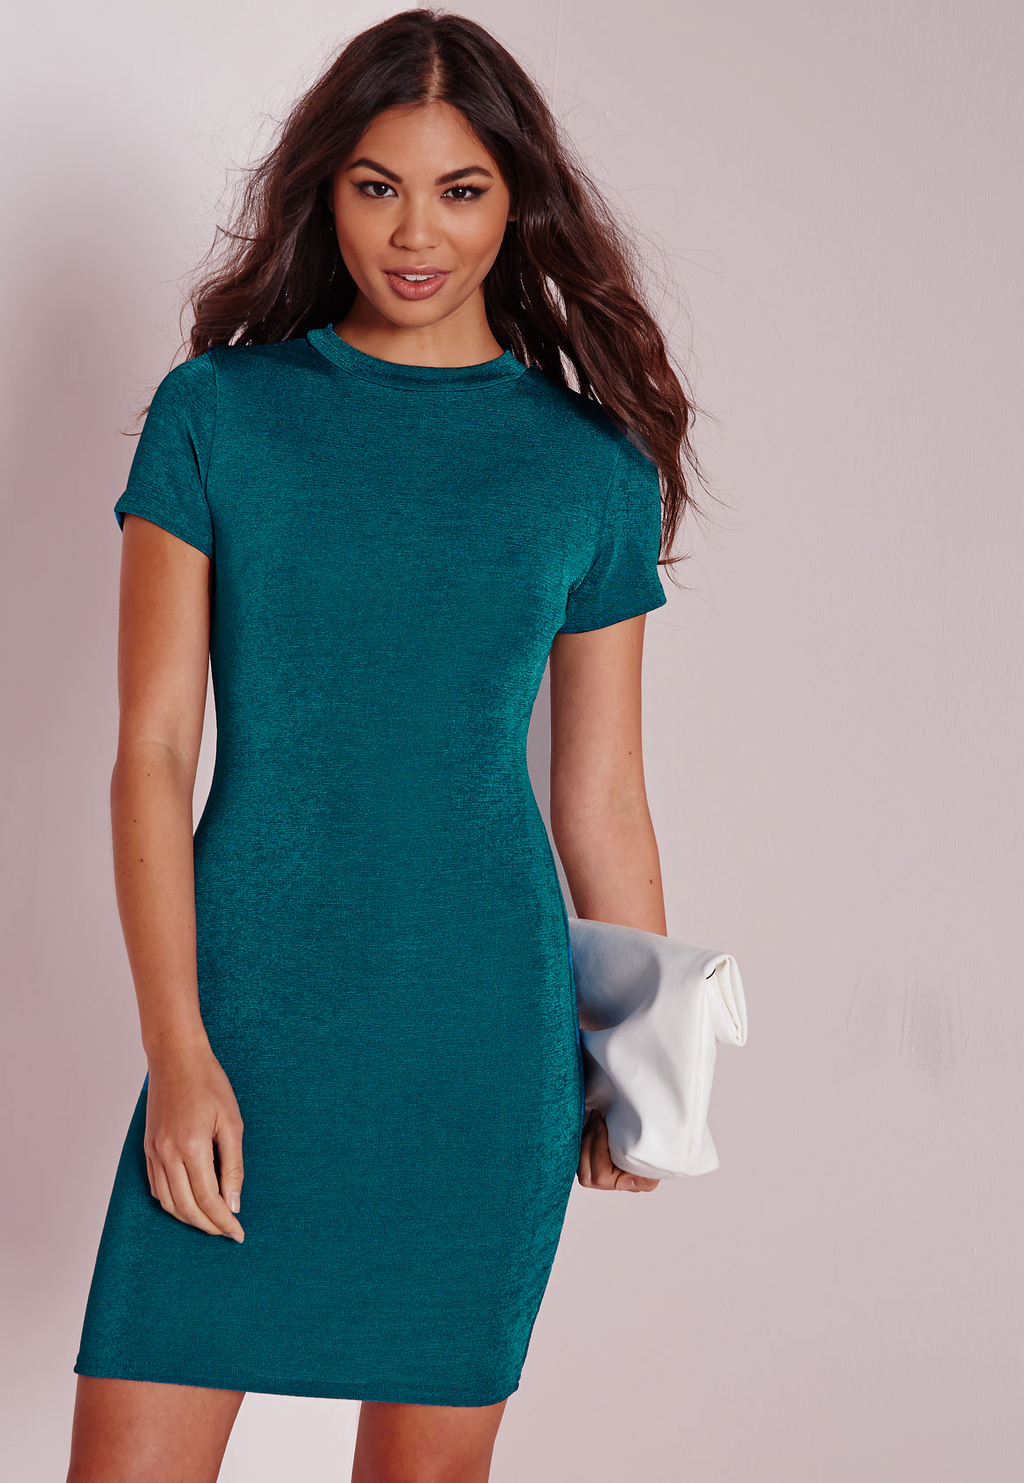 Cap Sleeve Knitted Bodycon Dress Teal, Blue - length: mid thigh; fit: tight; pattern: plain; style: bodycon; predominant colour: teal; occasions: evening; fibres: polyester/polyamide - stretch; neckline: crew; sleeve length: short sleeve; sleeve style: standard; texture group: jersey - clingy; pattern type: fabric; season: a/w 2015